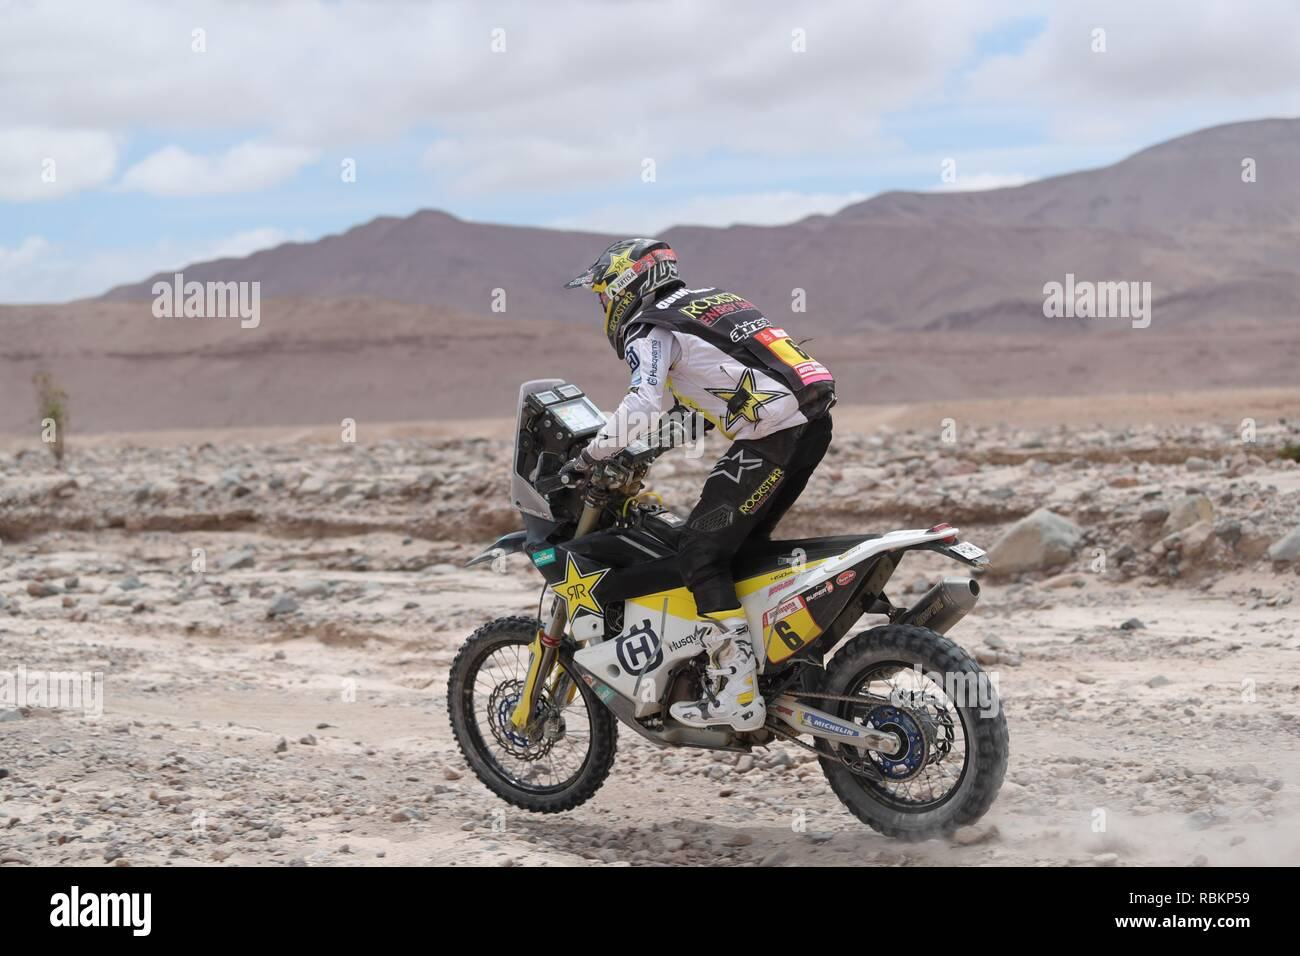 Tacna, Peru. 10th Jan, 2019. Chilean Pablo Quintanilla rides his Husqvarna during the fourth stage of the Rally Dakar 2019 between Arequipa and Tacna, in Peru, 10 January 2019. Credit: Ernesto Arias/EFE/Alamy Live News - Stock Image